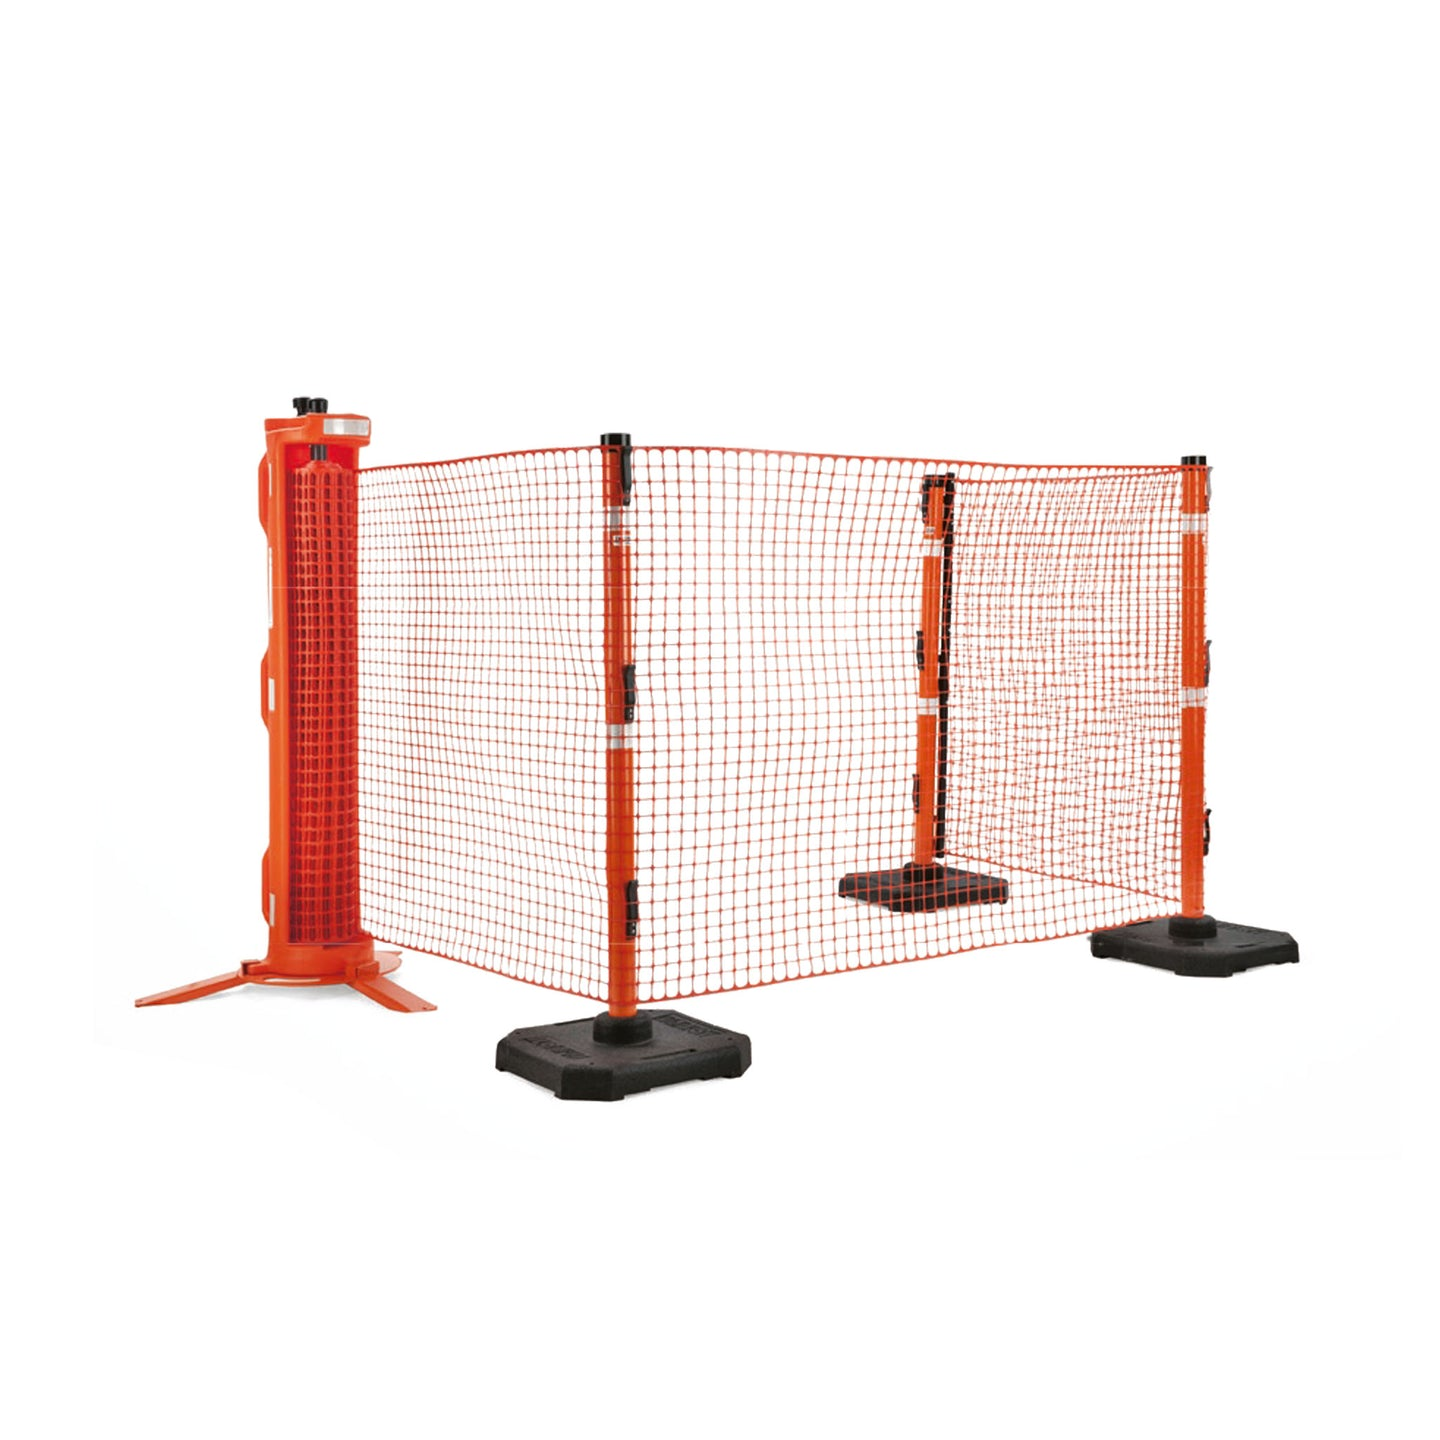 Rapid Roll - 15 meter with 4 posts and bases